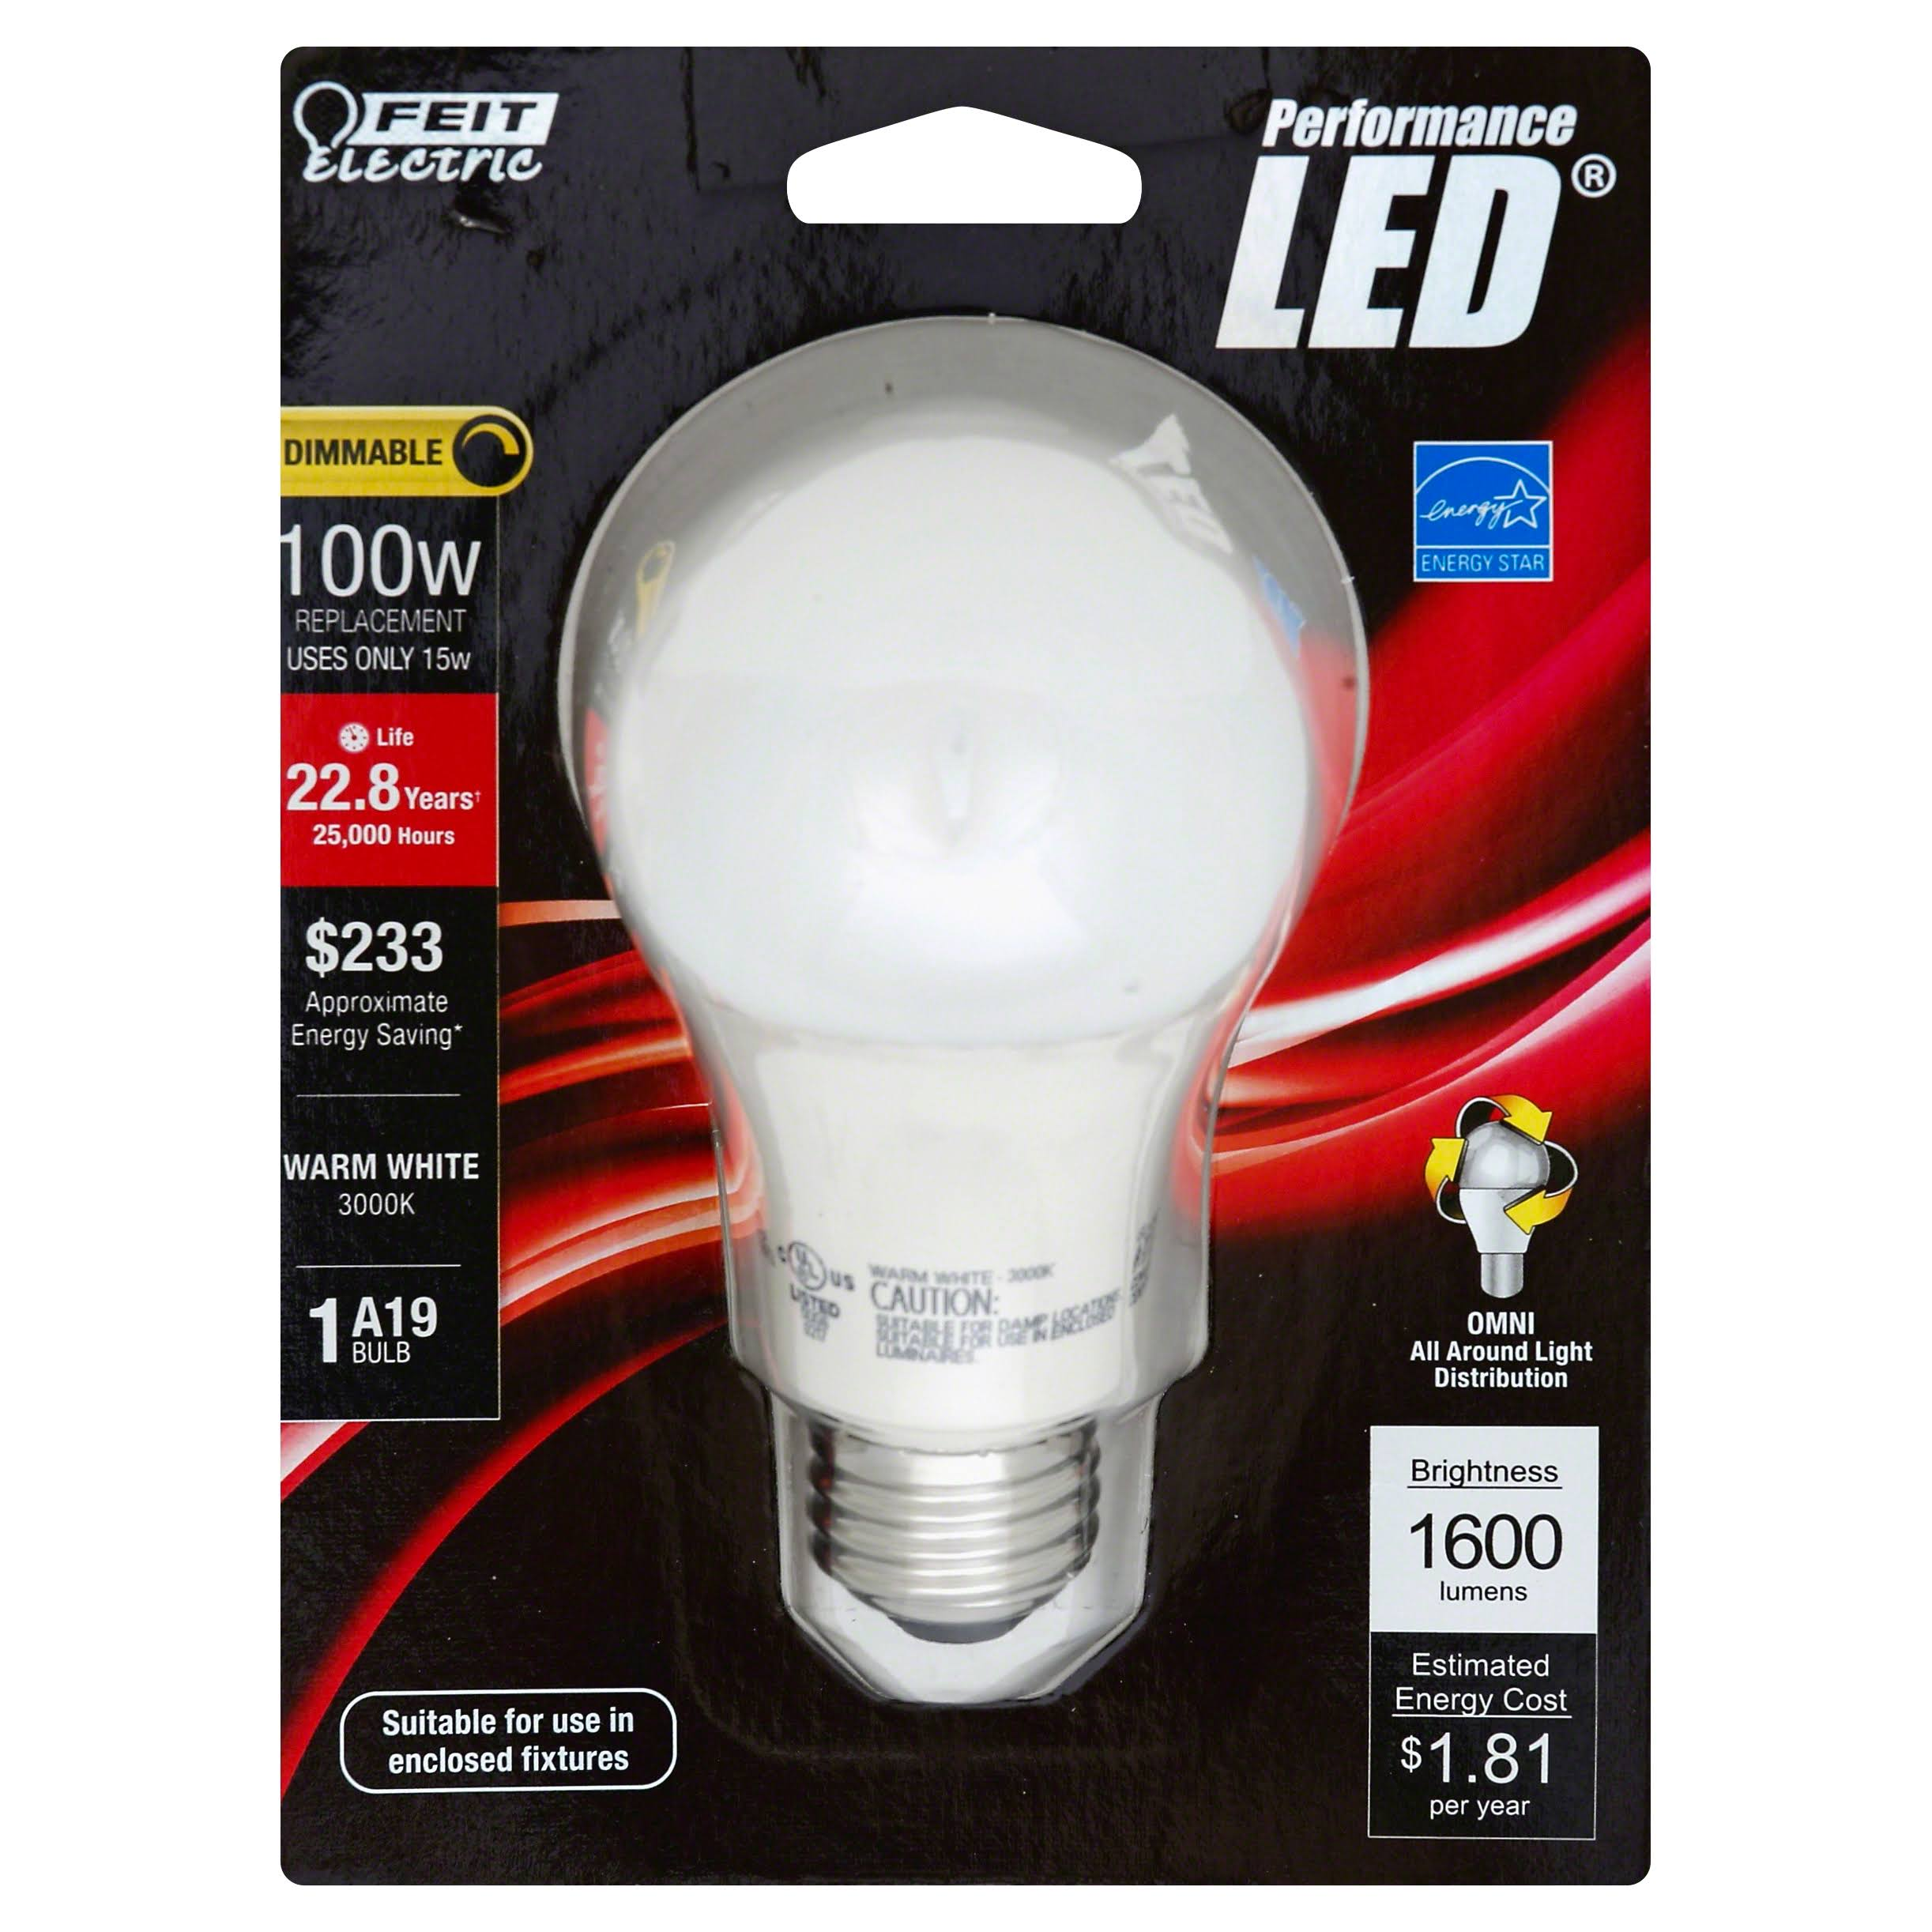 Feit Electric Dimmable Led Light - 120V, Soft White, 22W